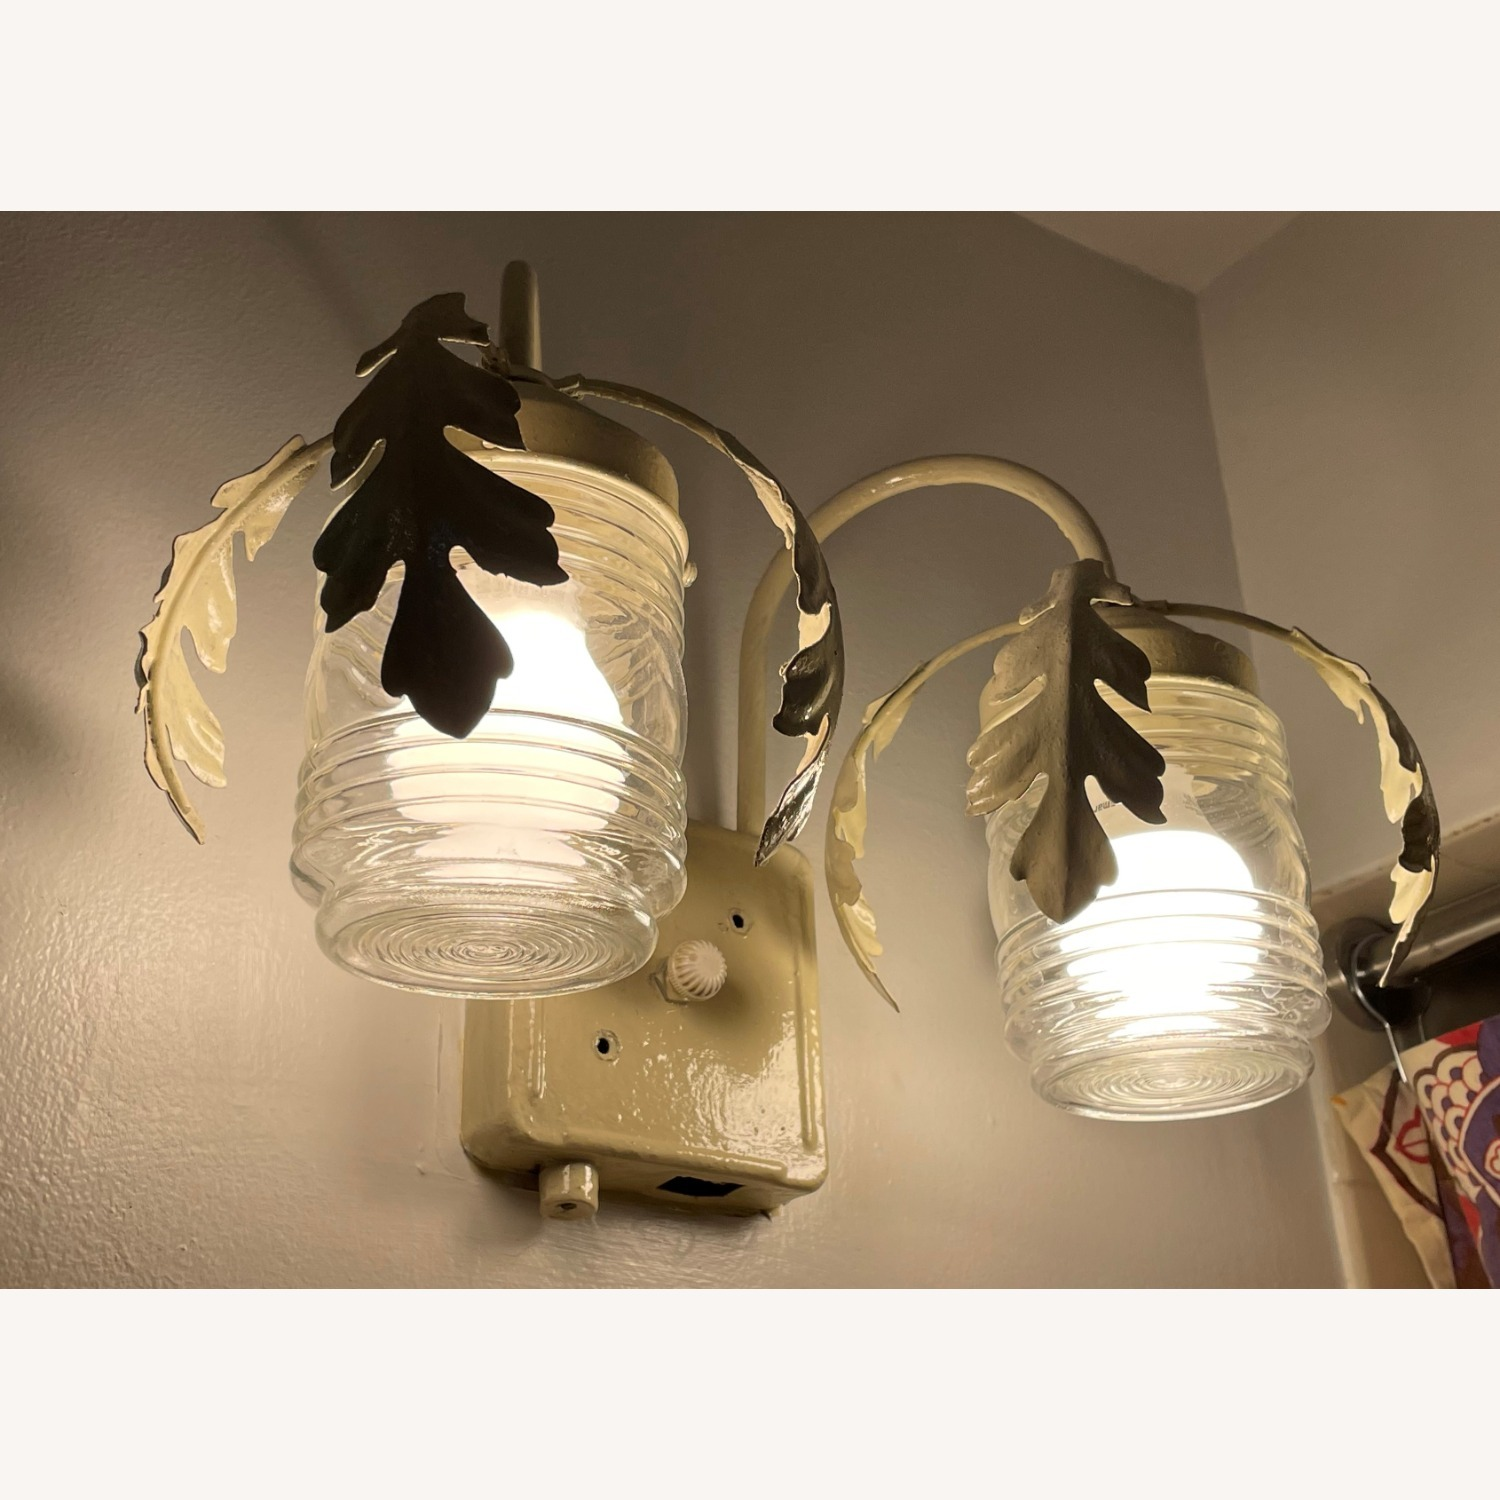 Vintage Mid-Century Rustic Shabby Chic Wall Sconce - image-1